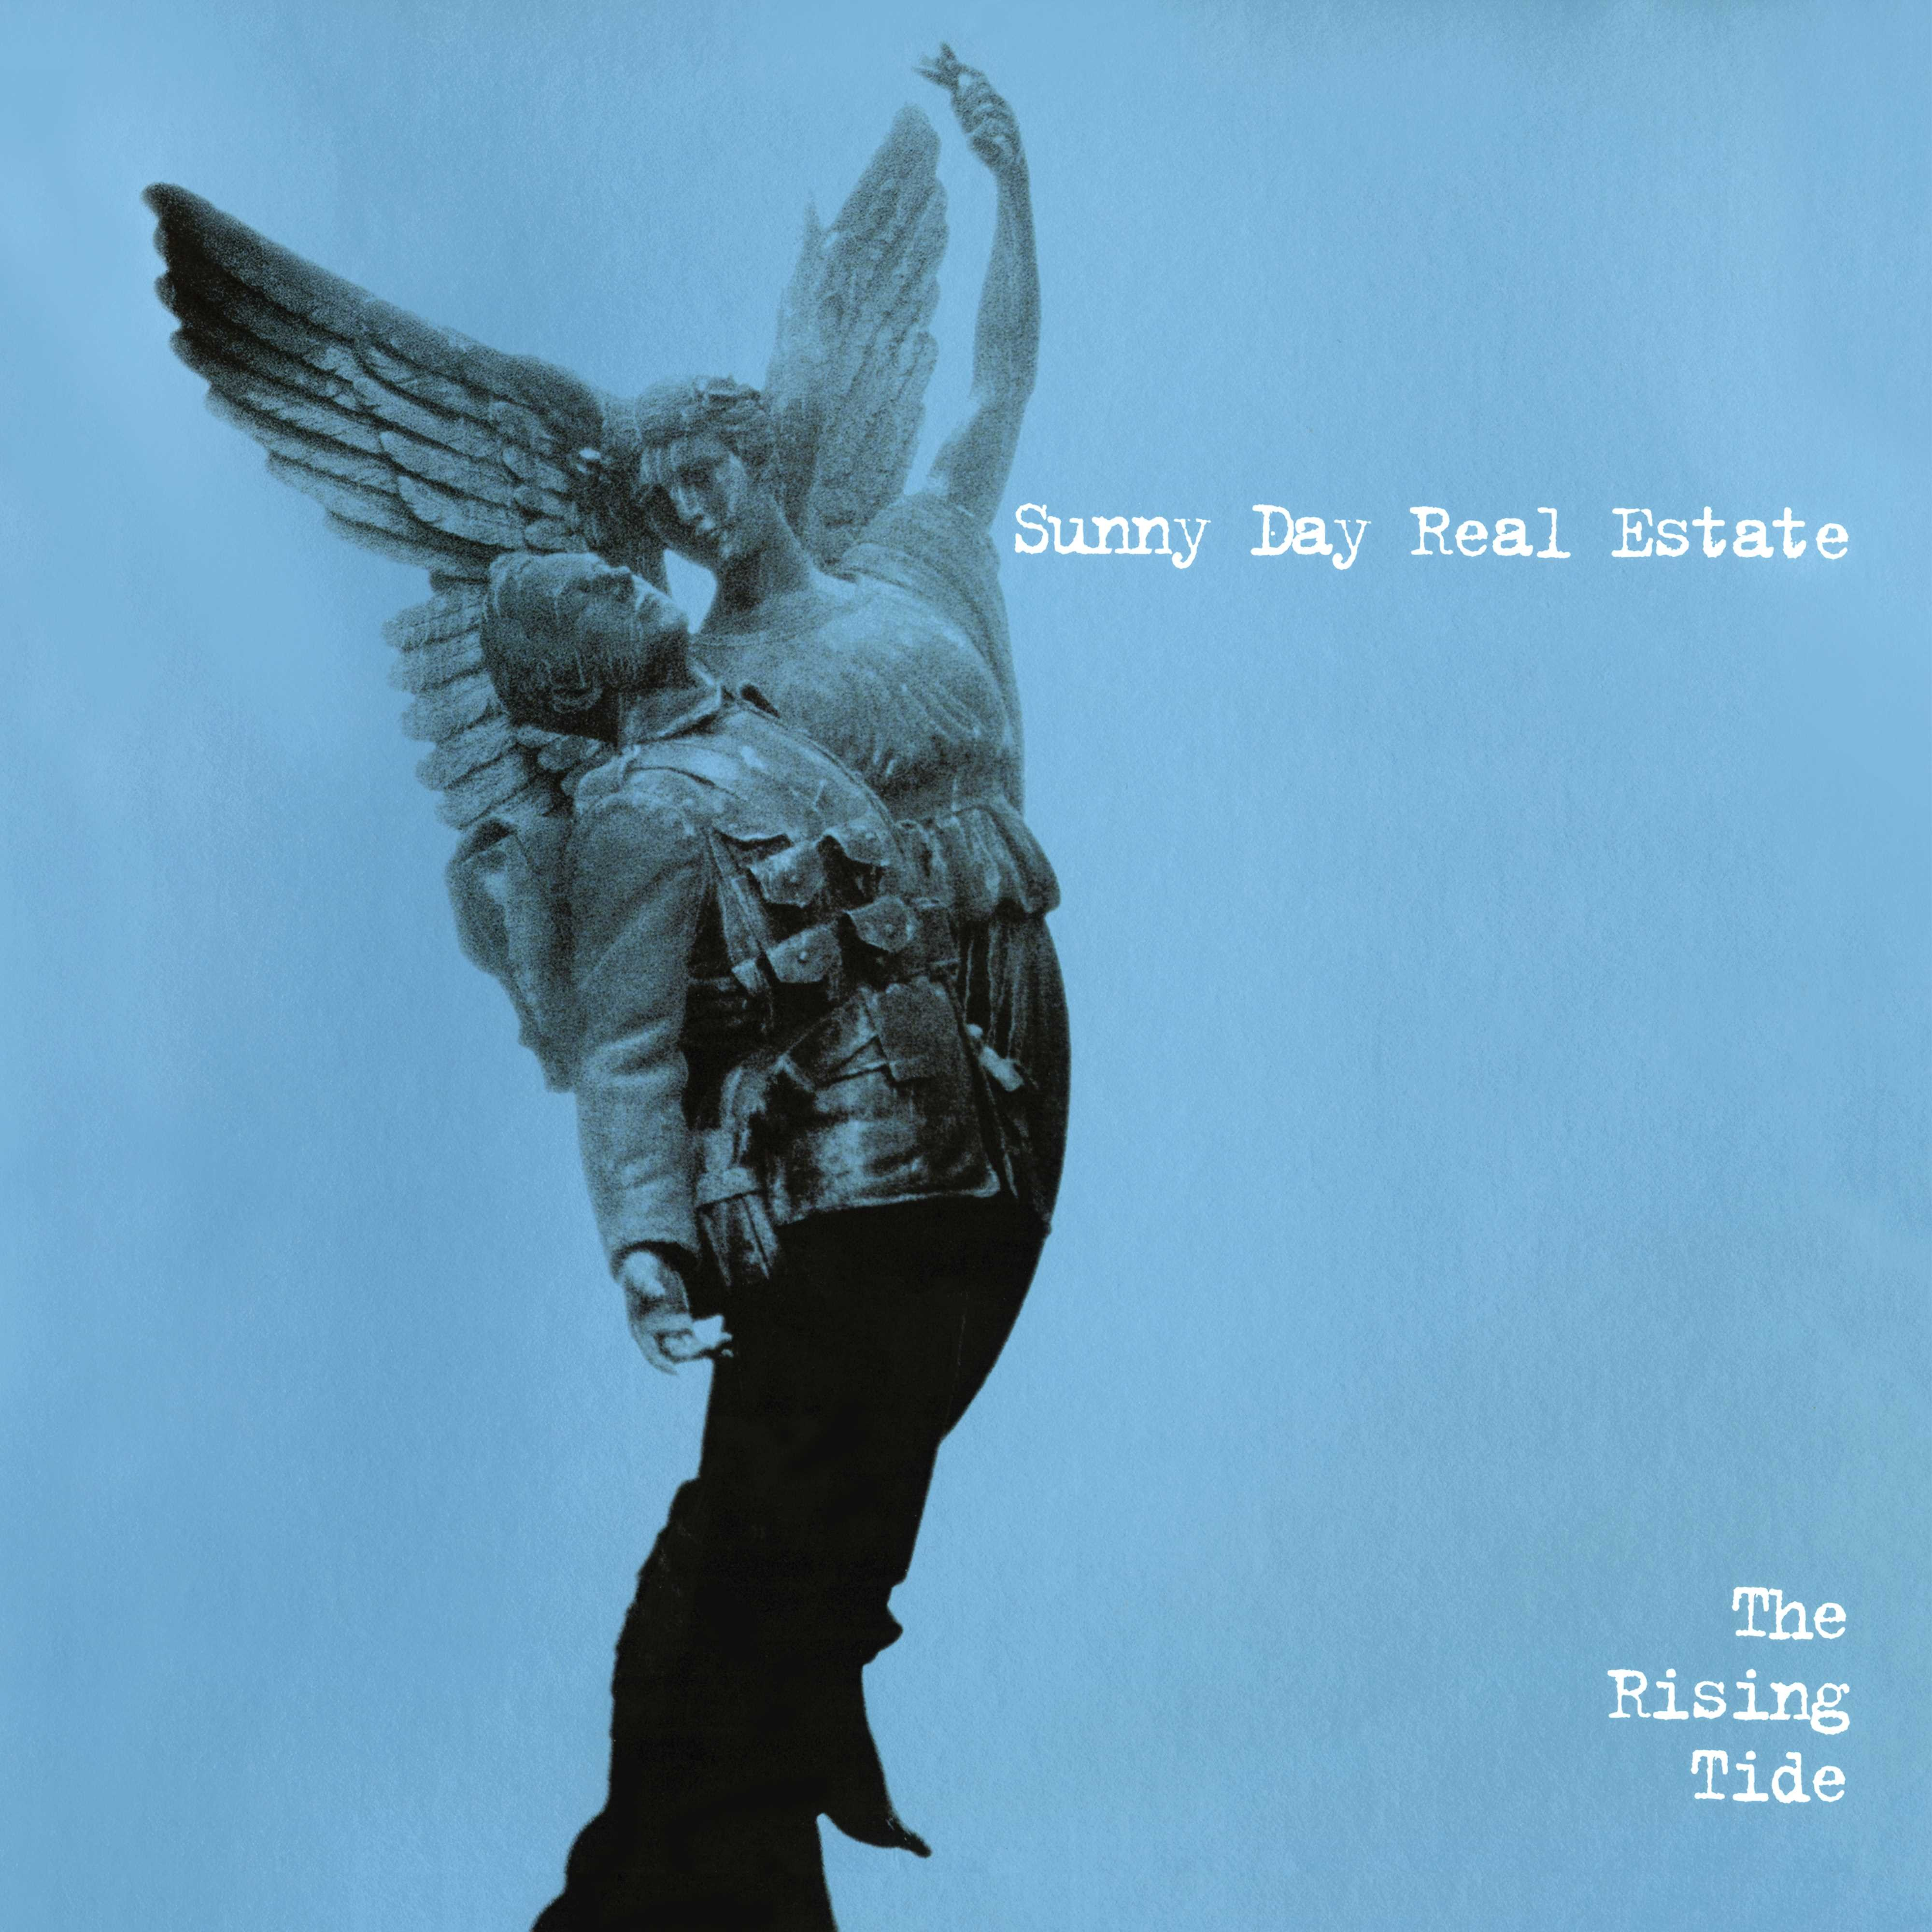 Sunny Day Real Estate - The Rising Tide 2XLP